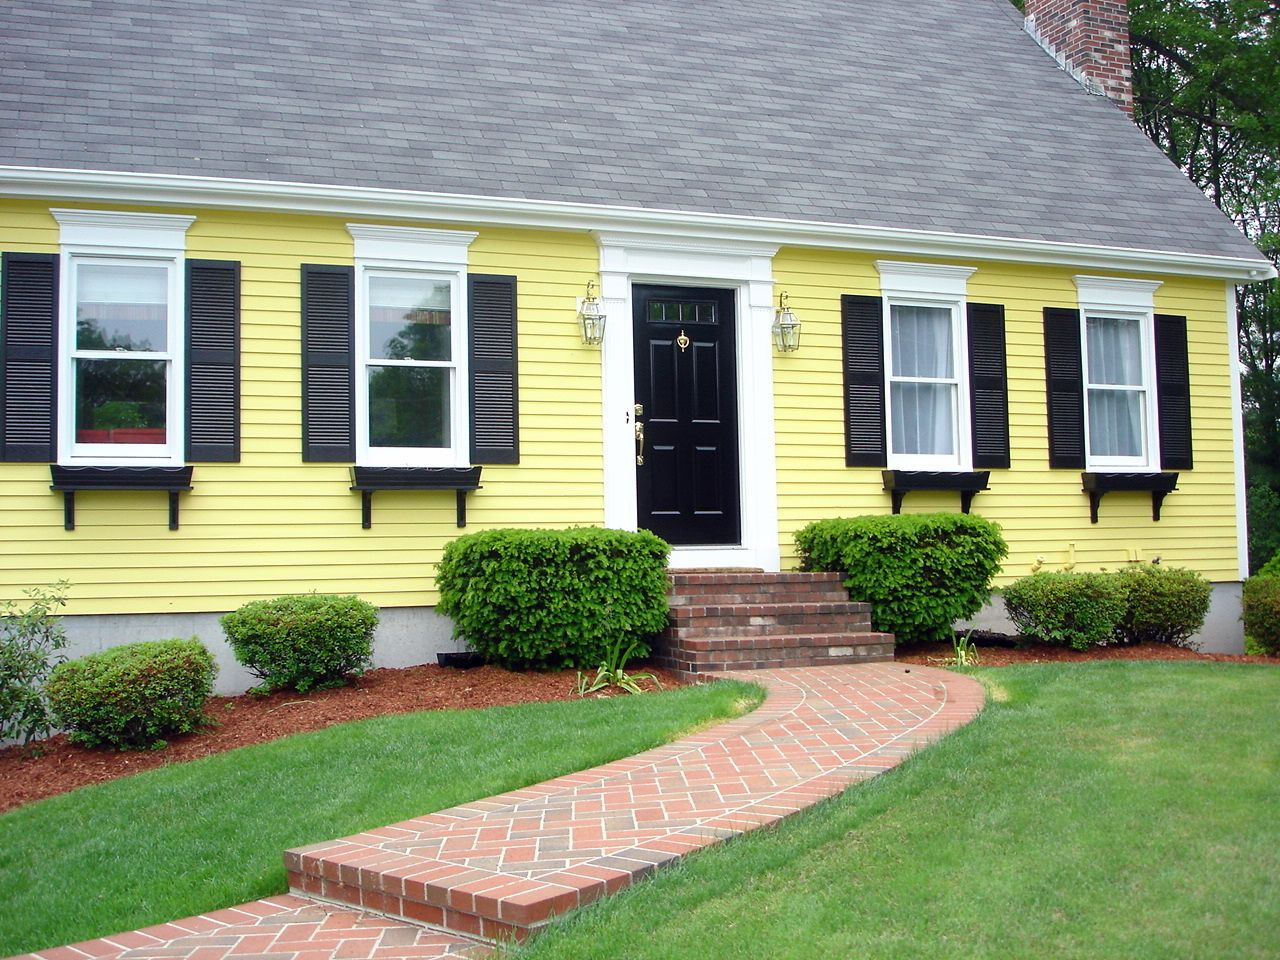 Pin By Joanna Moseley On Home Decorating House Paint Exterior